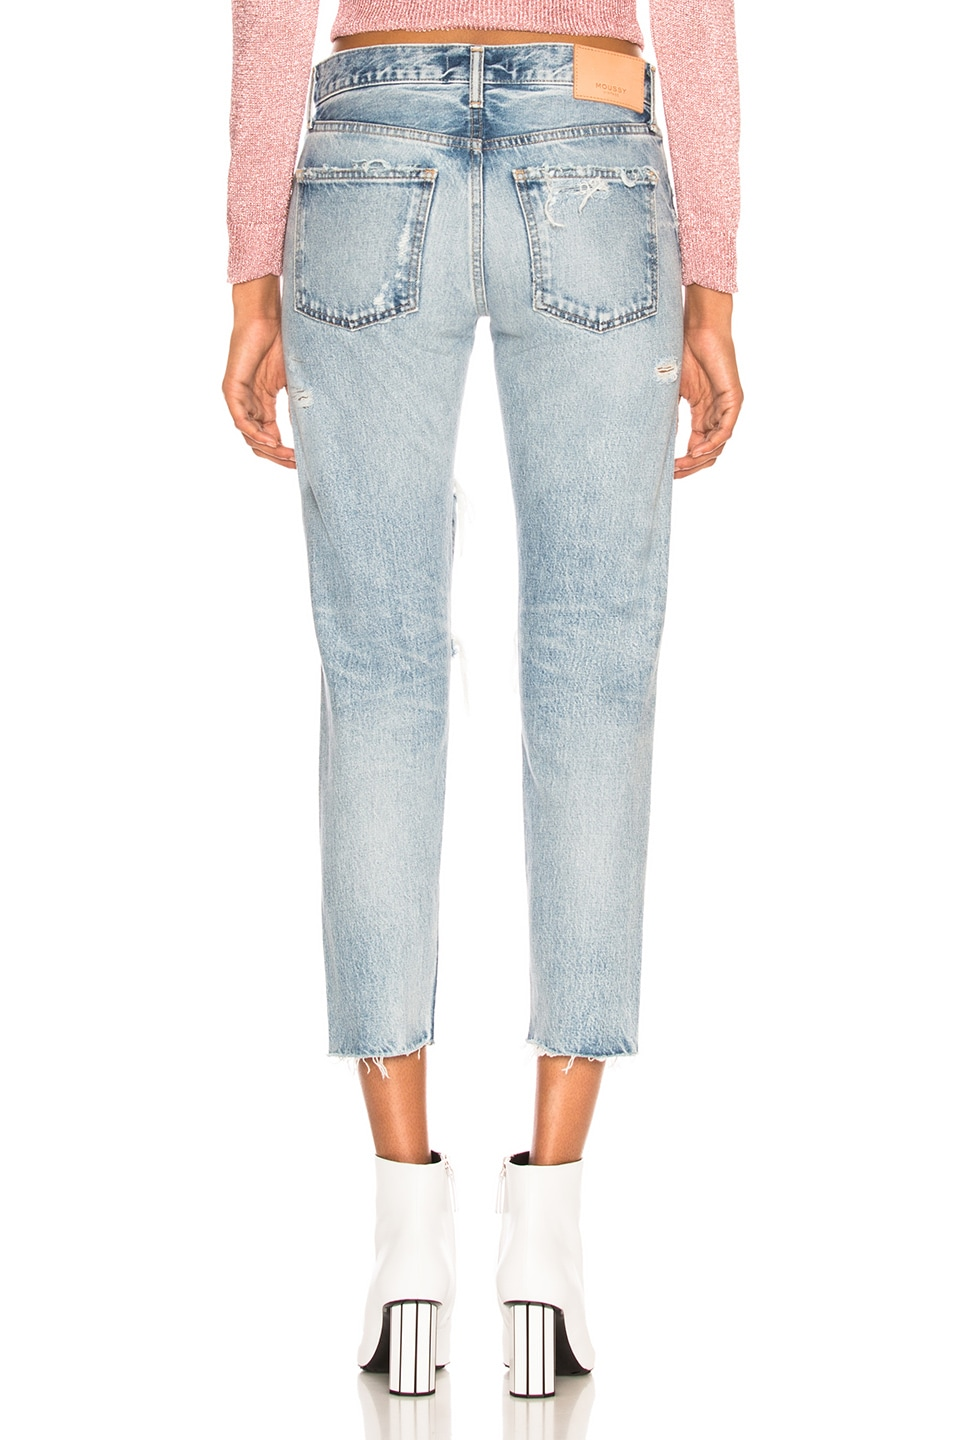 MOUSSY VINTAGE Cottons MOUSSY VINTAGE BRANFORD TAPERED JEAN IN BLUE.